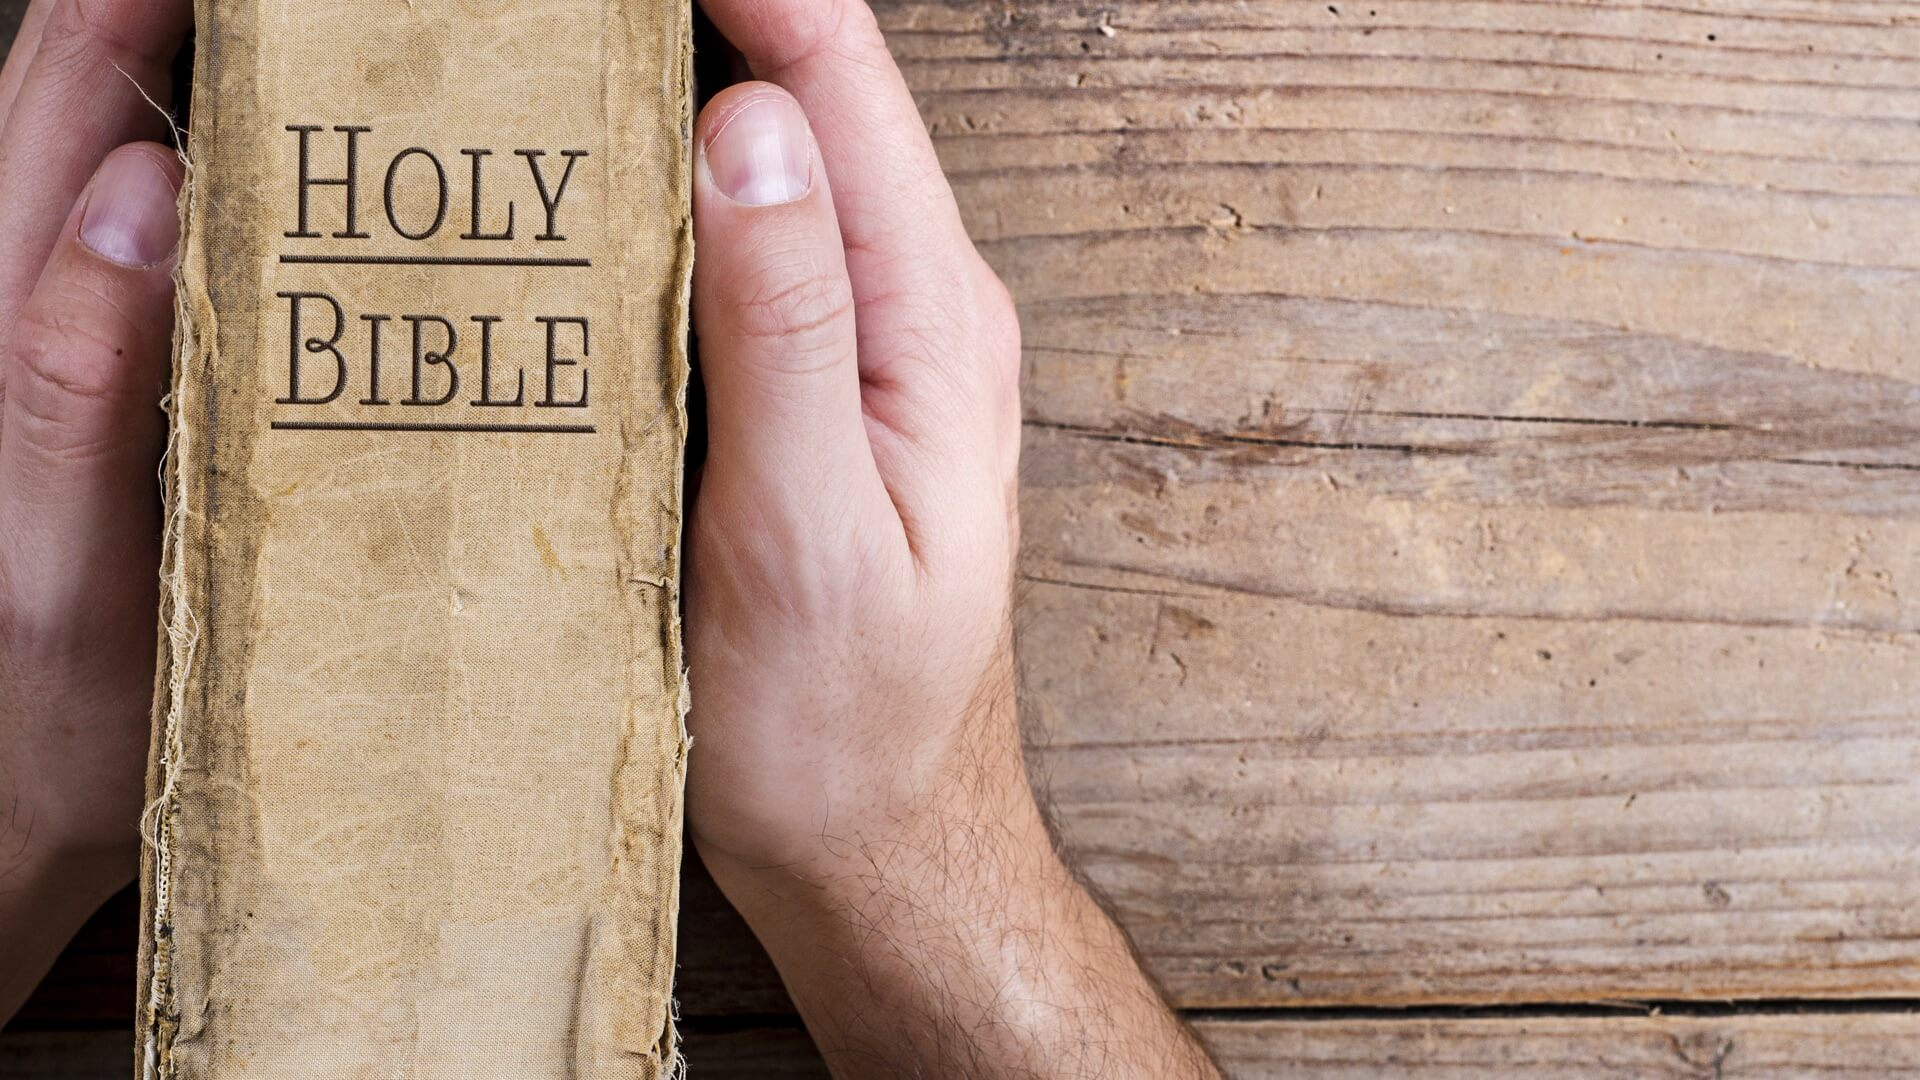 How To Study The Bible a blog post by Vince Miller of Resolute Men's Bible Studies